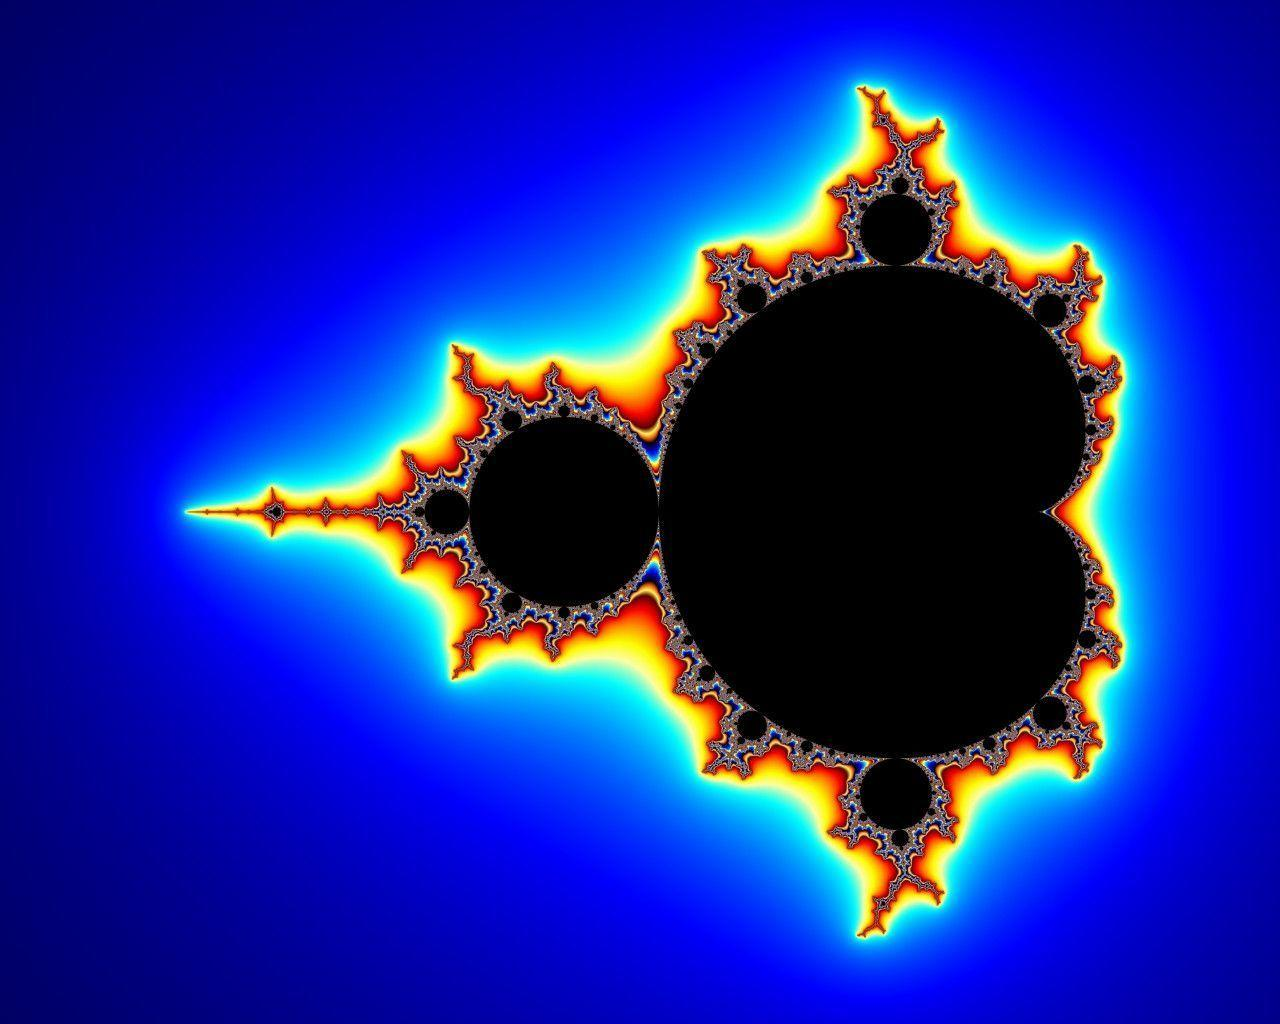 "Mandelbrot Set 02"" fractal image by fractalposter. HD Wallpapers"